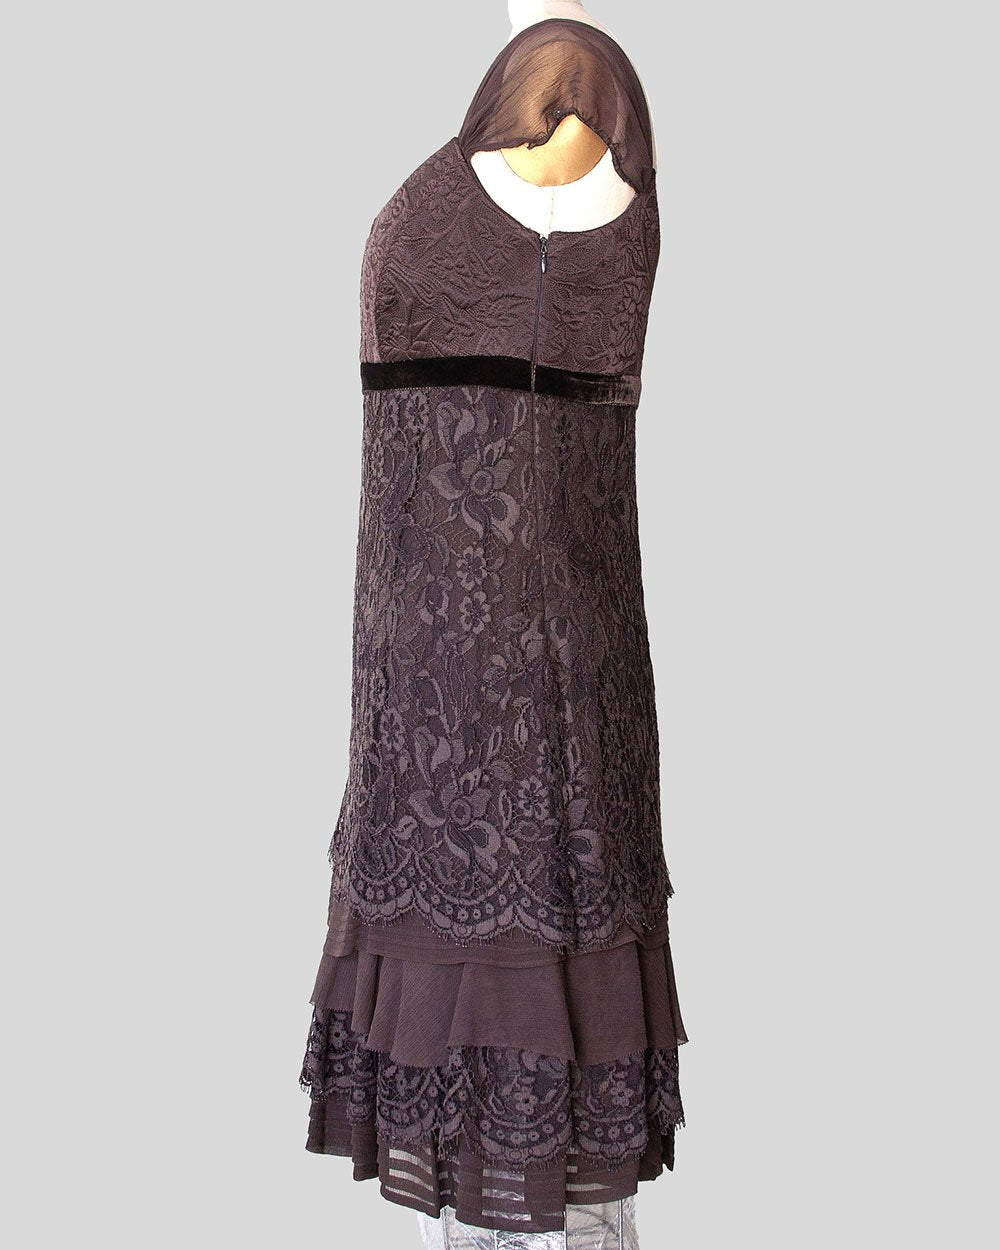 Elie Tahari, Silk and Chiffon, Lace and Embroidered Dress